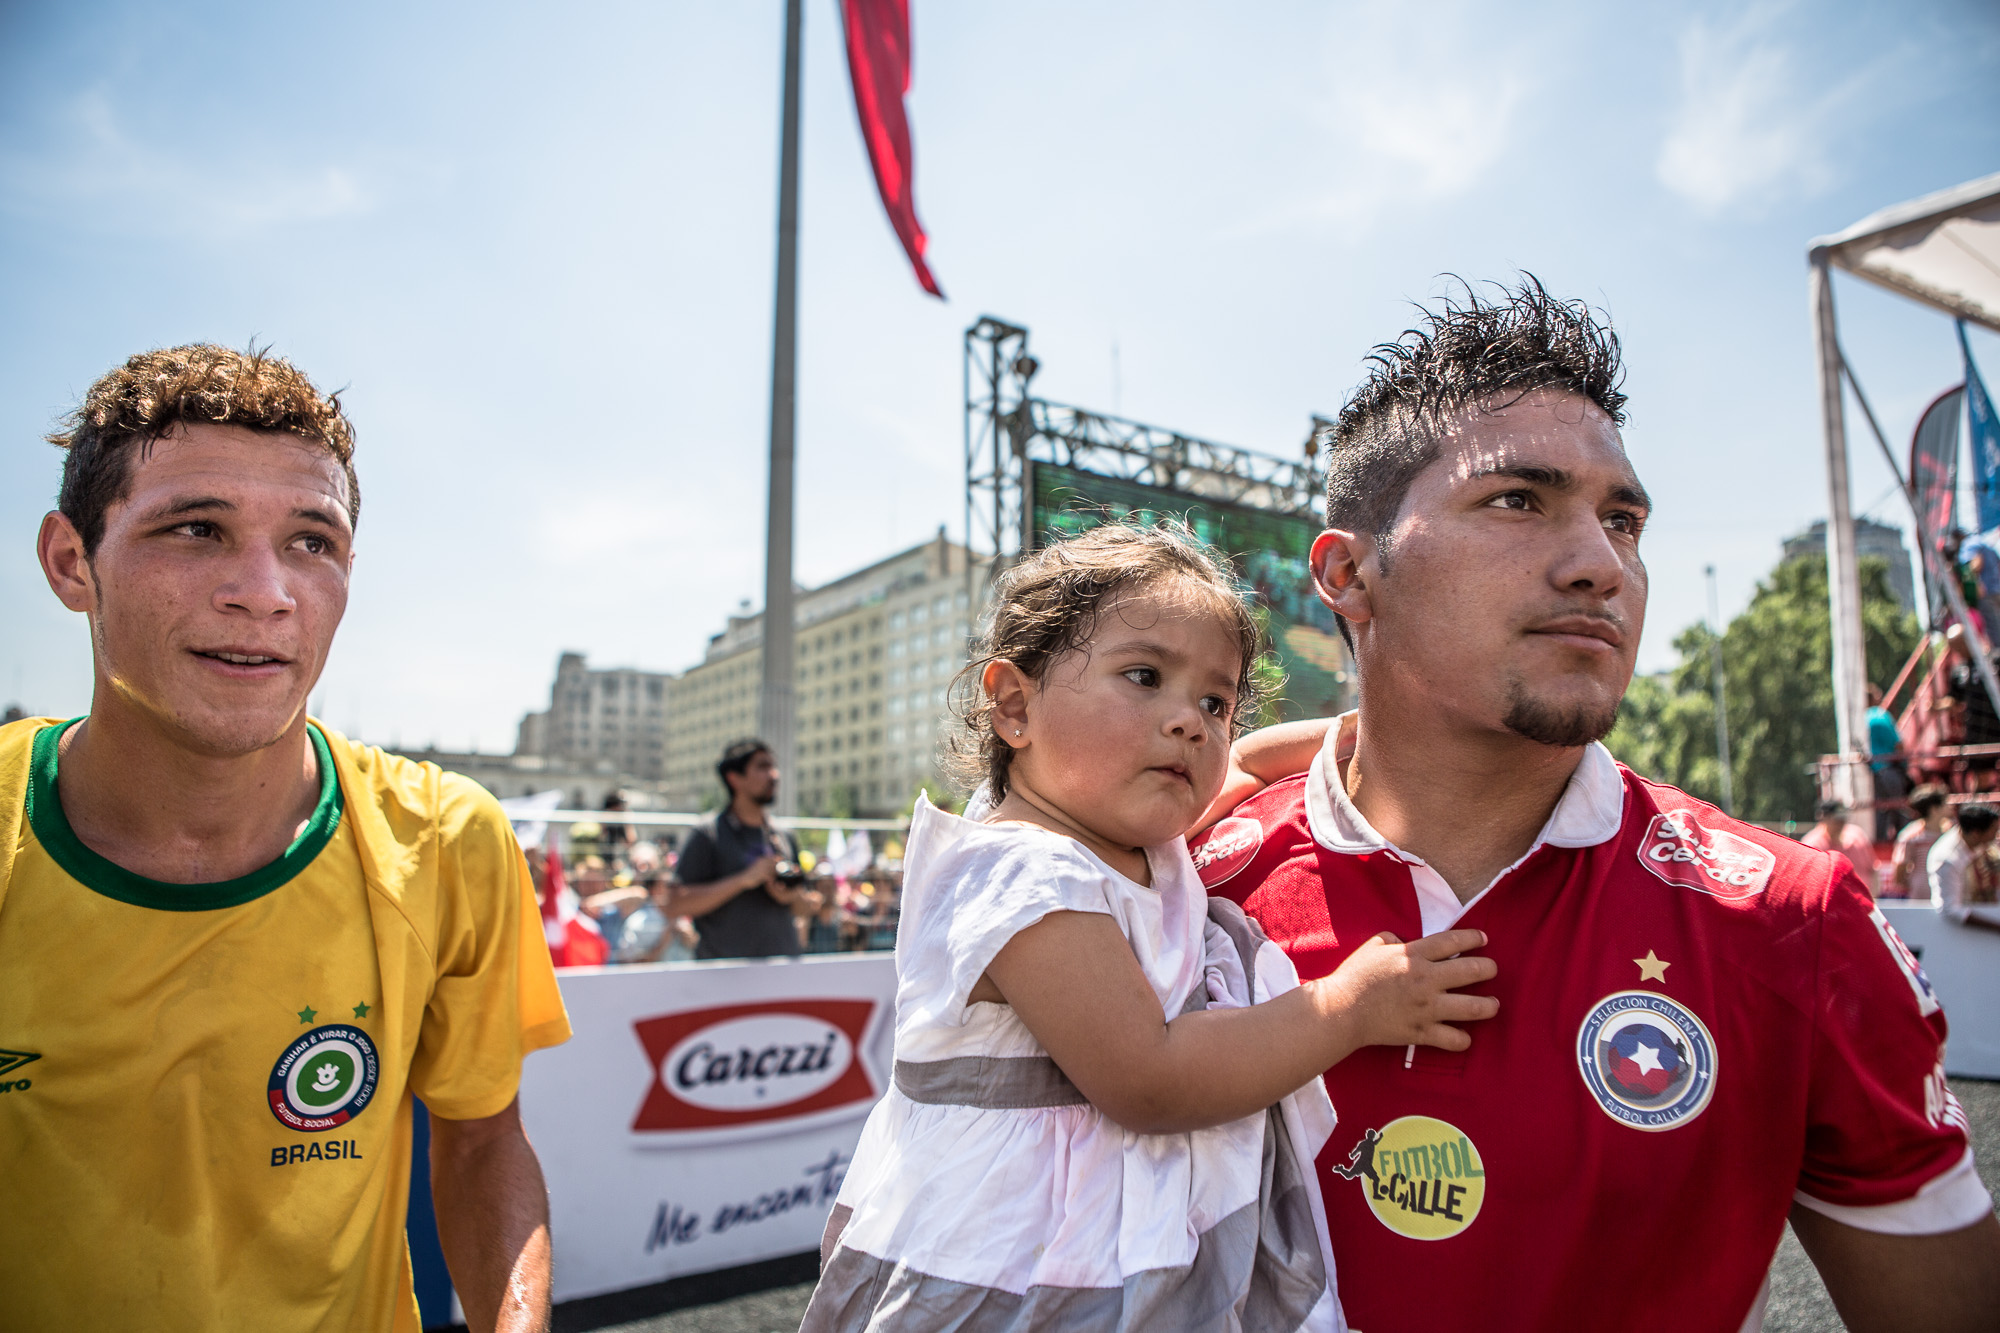 Players from both Chile and Brazil celebrate Chile's win in the final of the Homeless World Cup.  As the whistle was blown, this Chilean player grabbed his young daughter, to share in the celebrations of victory. The sense of empowerment on the faces of both the winning and losing team was overwhelming.